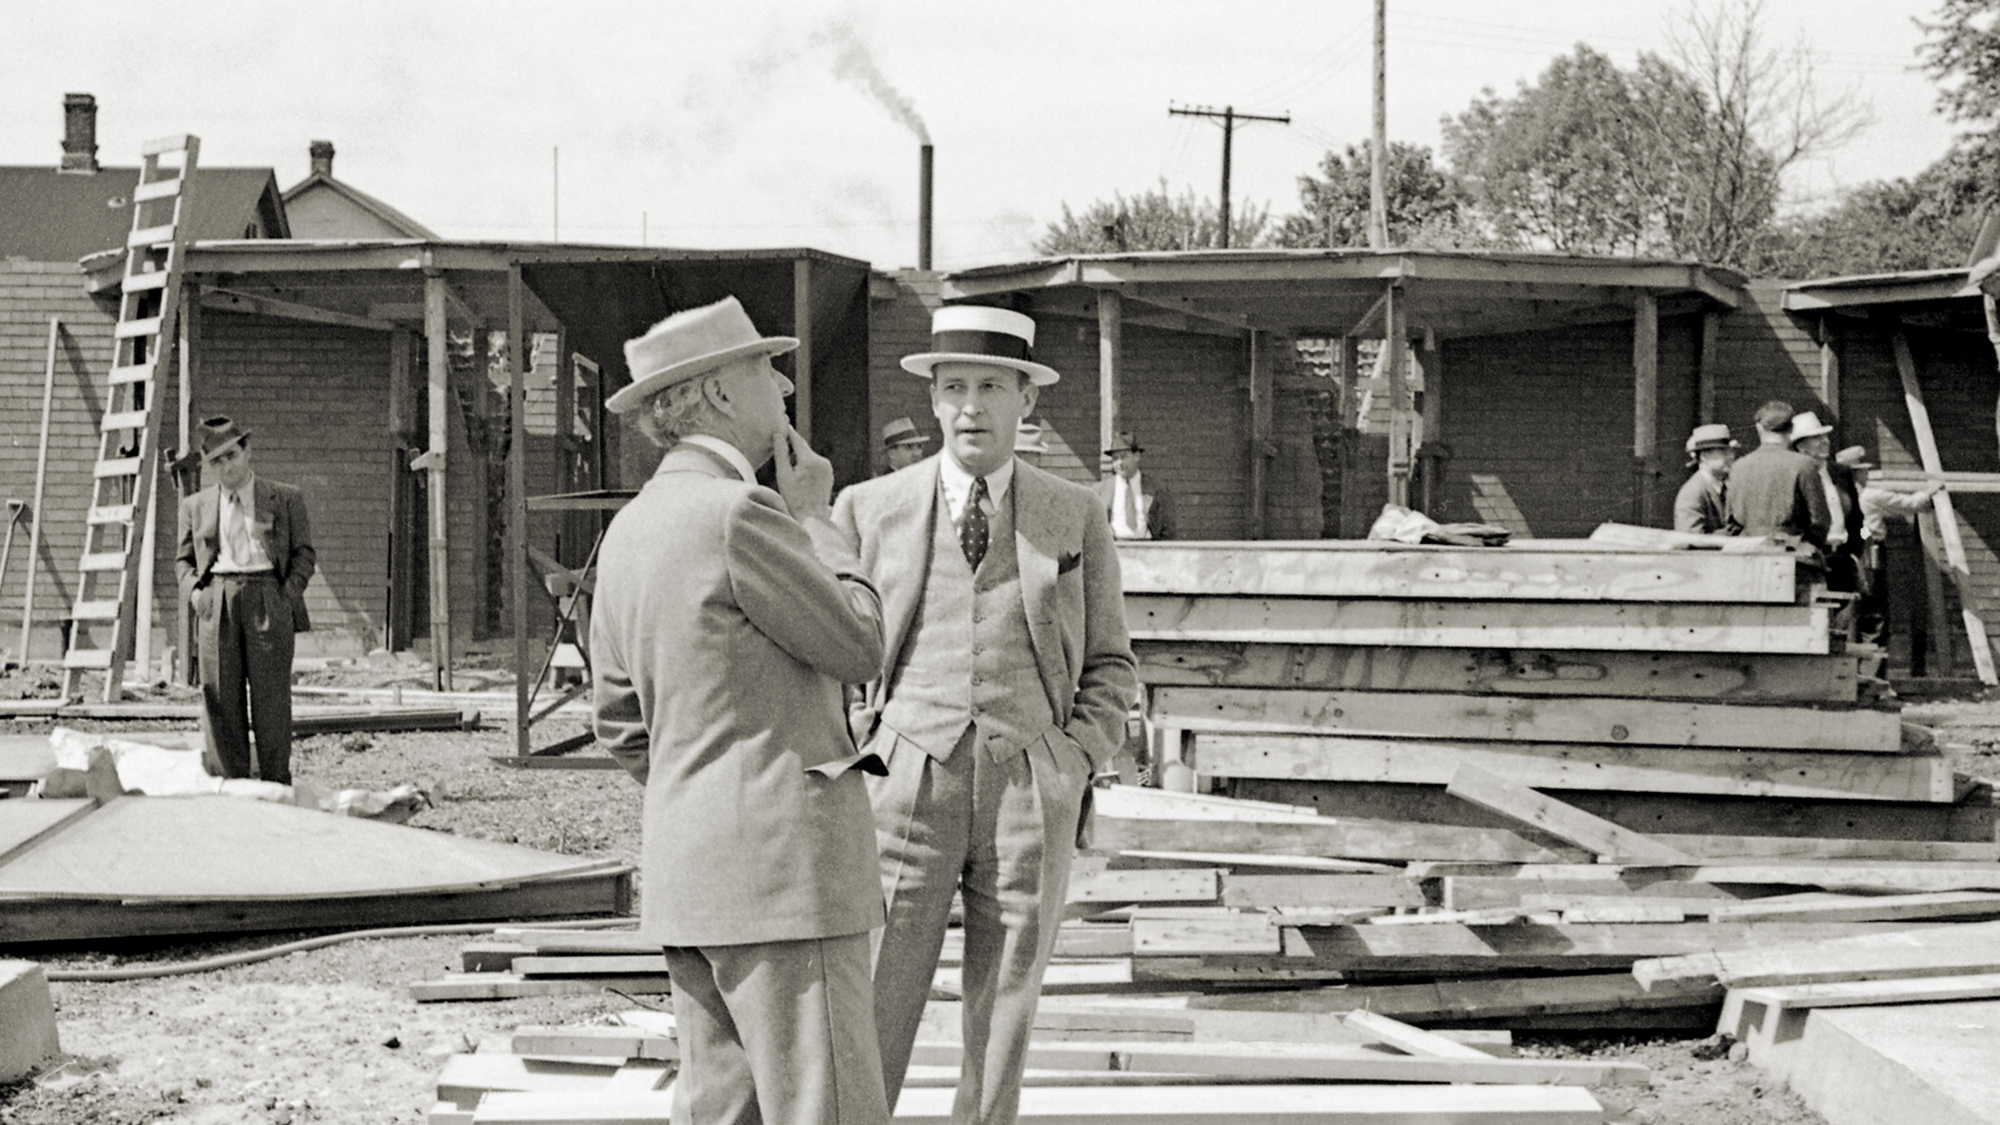 H.F. Johnson, Jr. e Frank Lloyd Wright, na SC Johnson